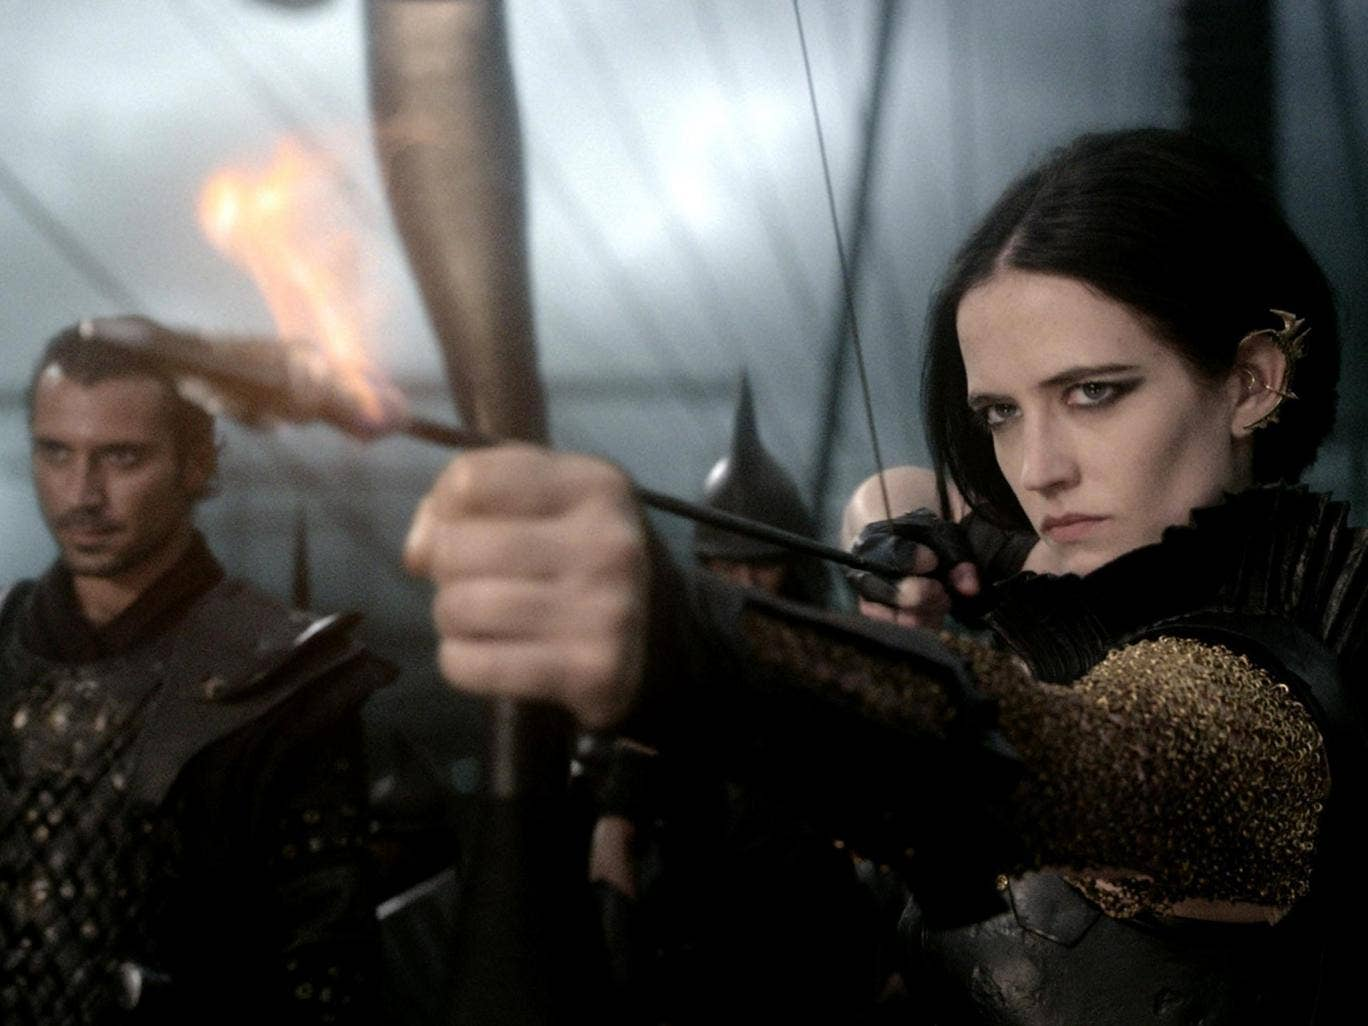 Flame and shame: even with Eva Green, '300: Rise of an Empire' falls flat